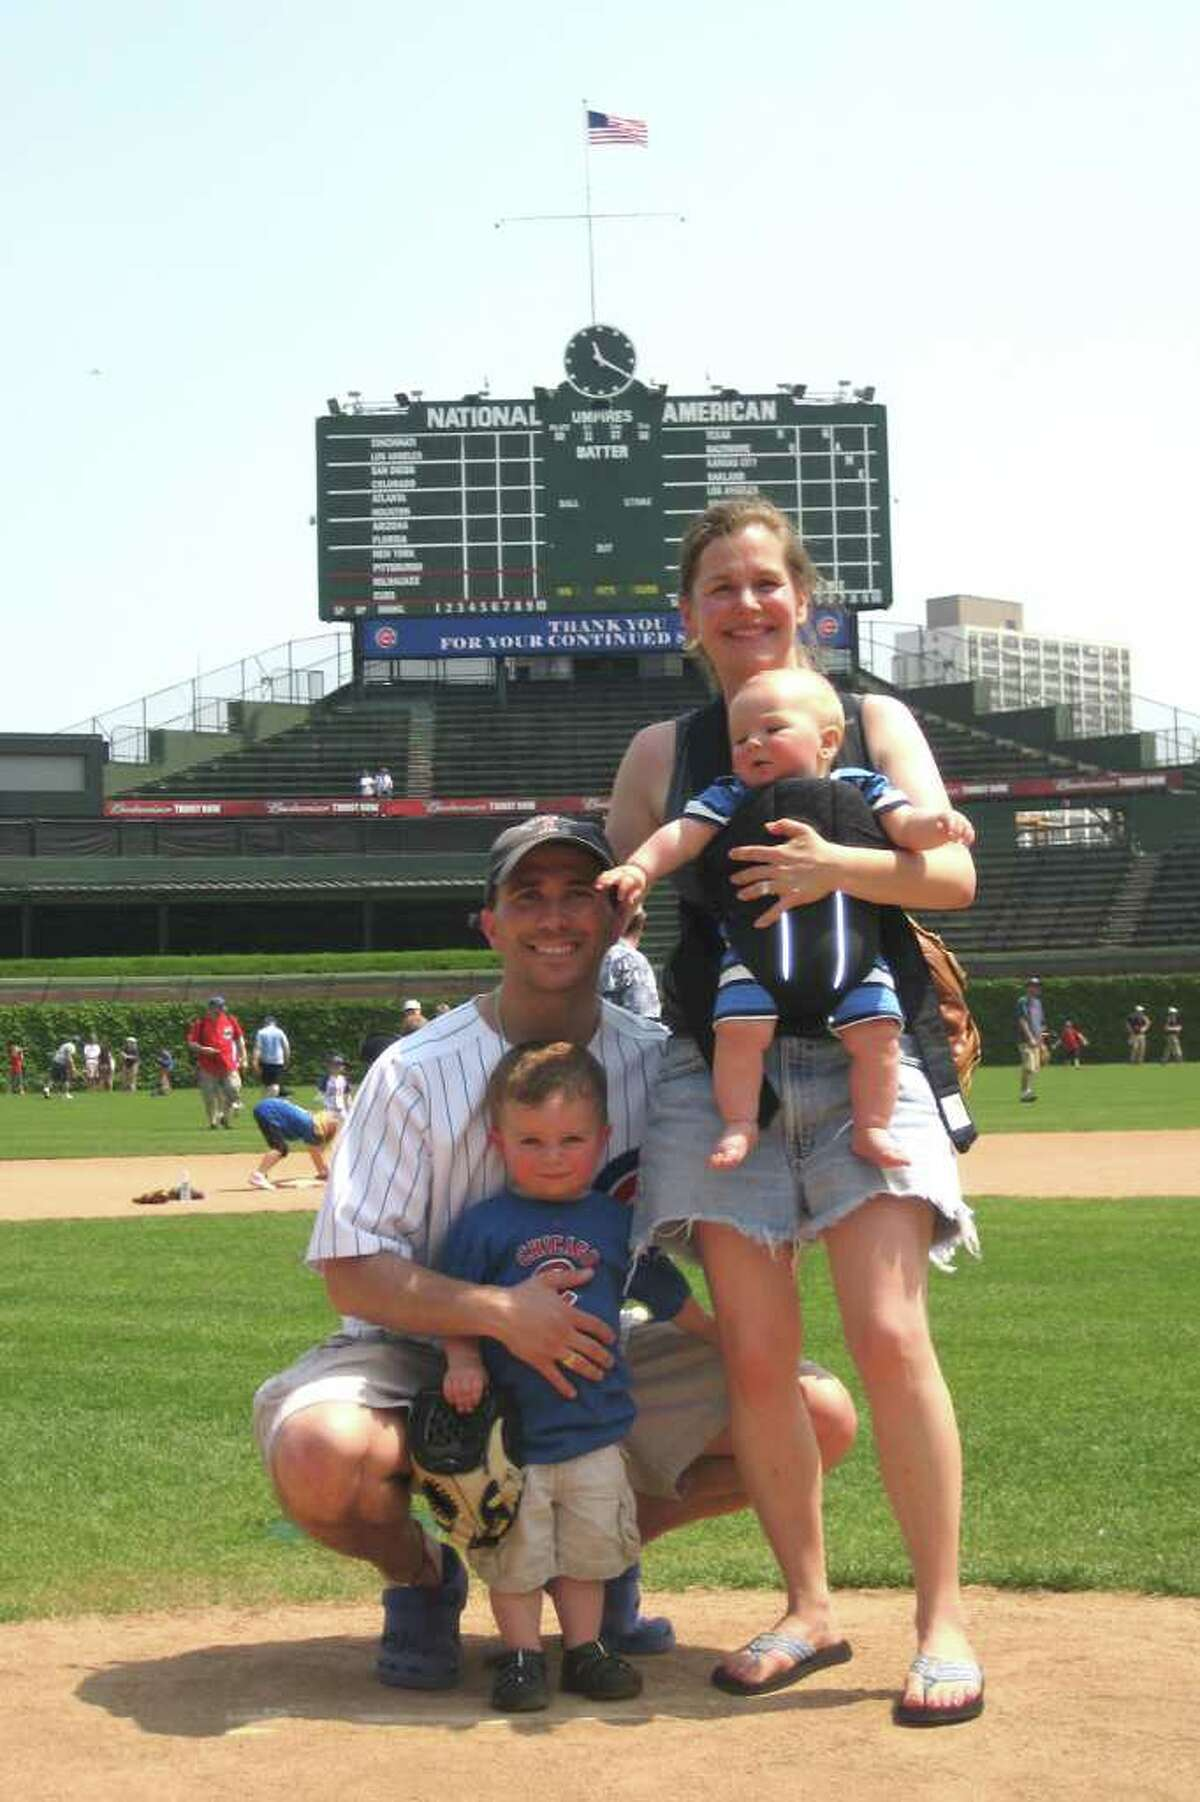 Jim Colpi, 33, with his family at Wrigley Field in Chicago, where they now live. Colpi escaped 2 World Trade Center, where he worked for Morgan Stanley, on Sept. 11, 2001.